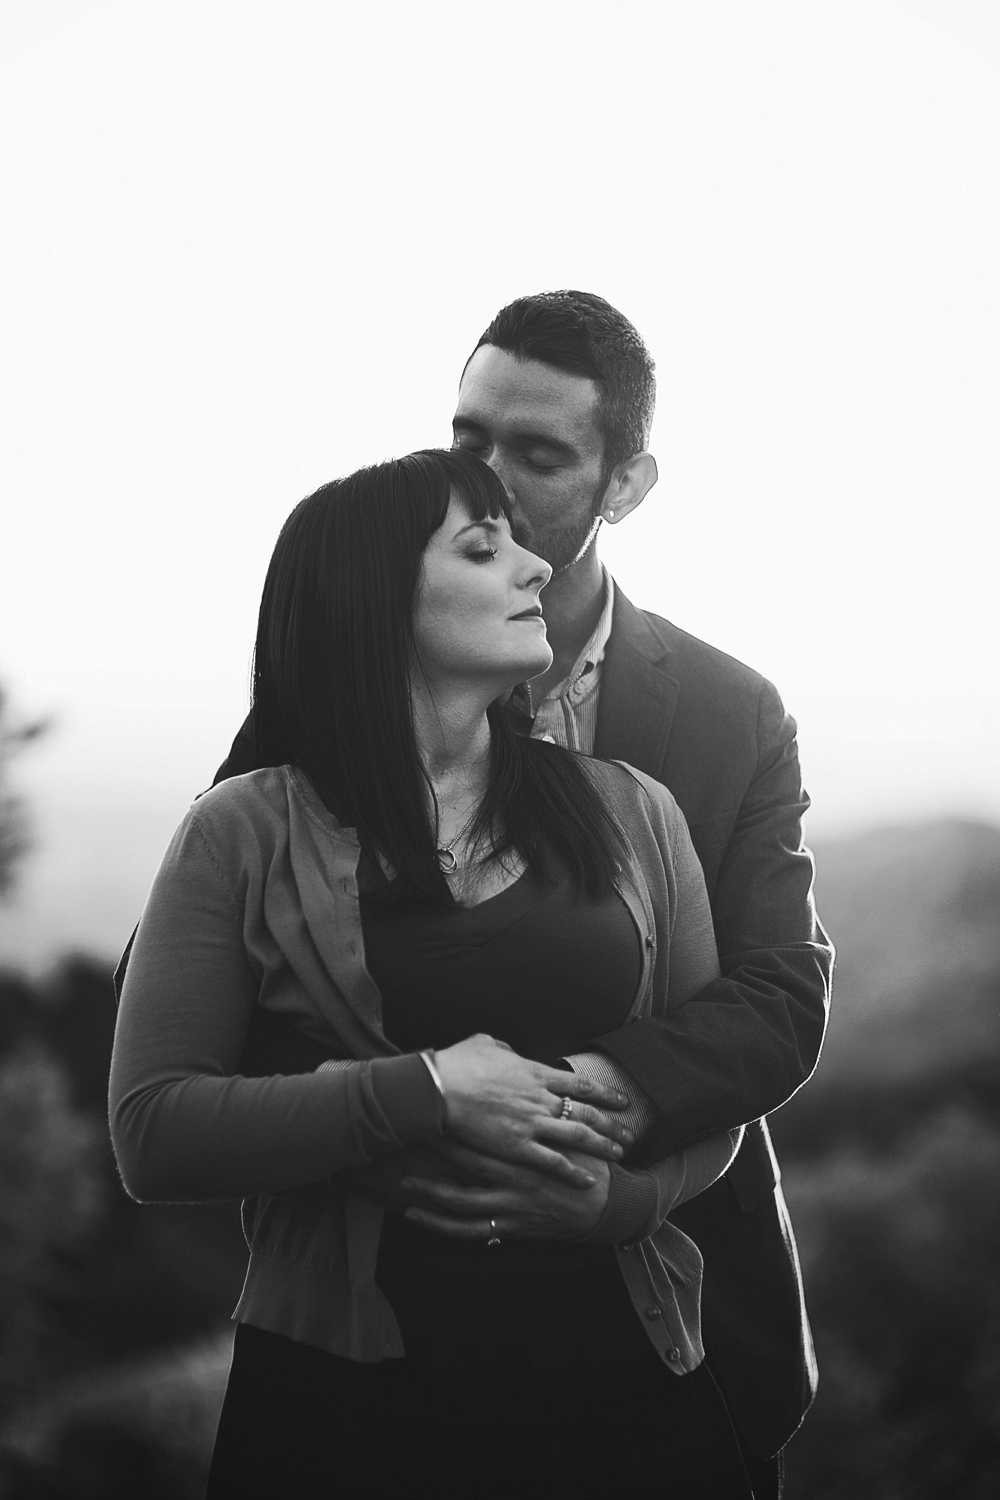 Christopher + Lesley | Albuquerque, NM | Engagement Photography 31.jpg